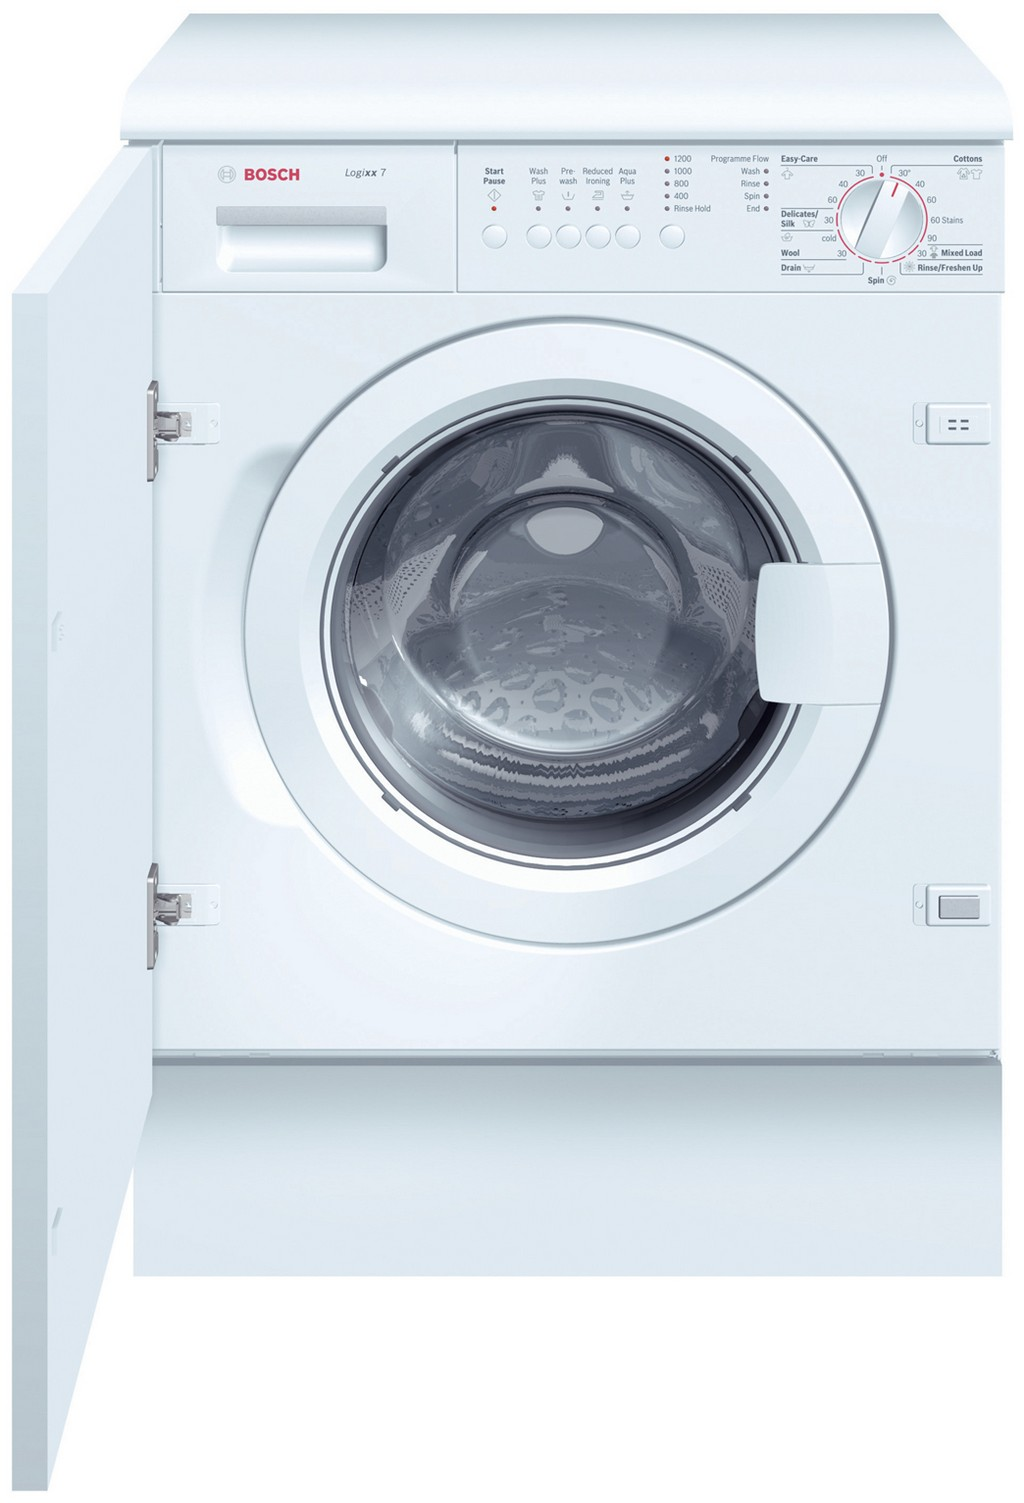 videocon washing machine, bosch integrated washing machine, roper washing machine